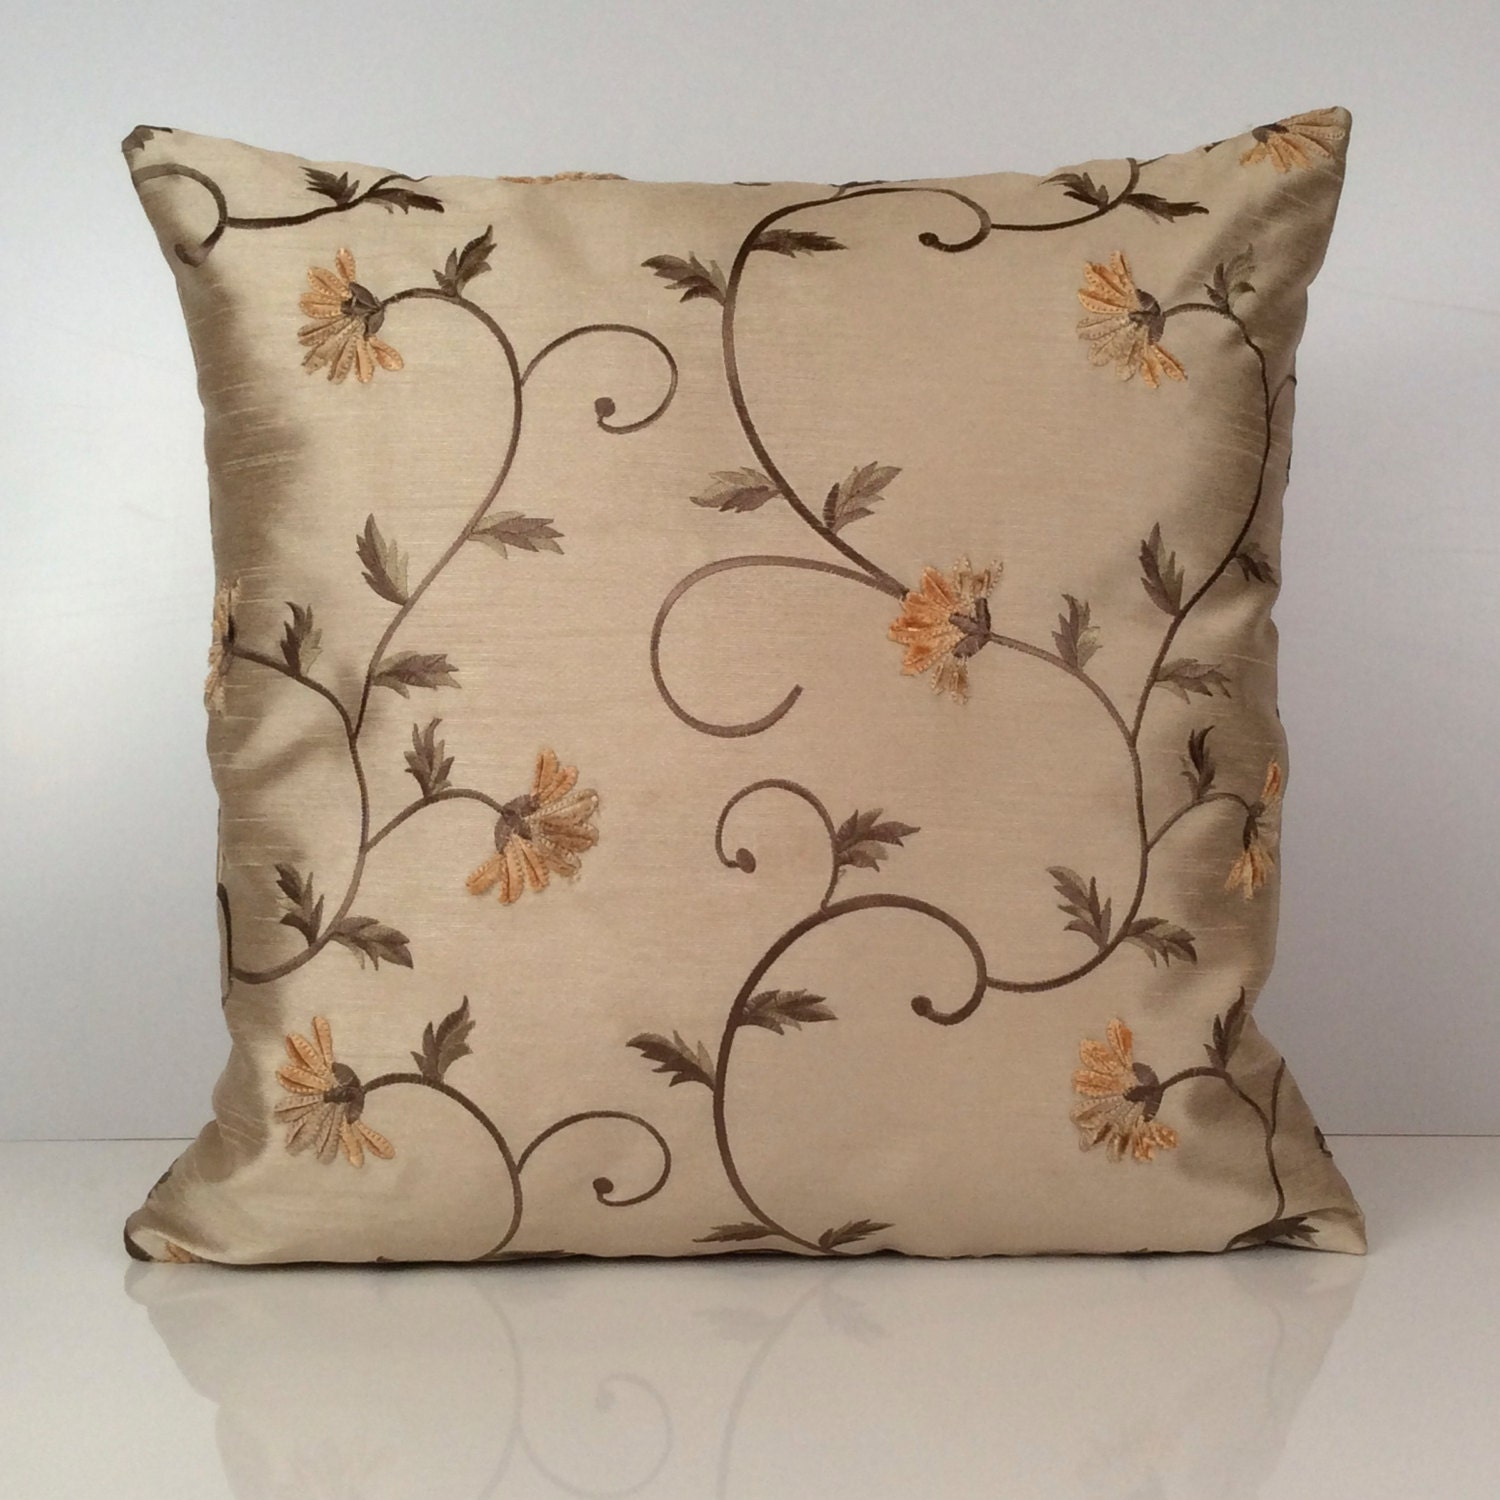 Light tan ivory beige pillow decorative throw pillow cover - Decorative throw pillows ...